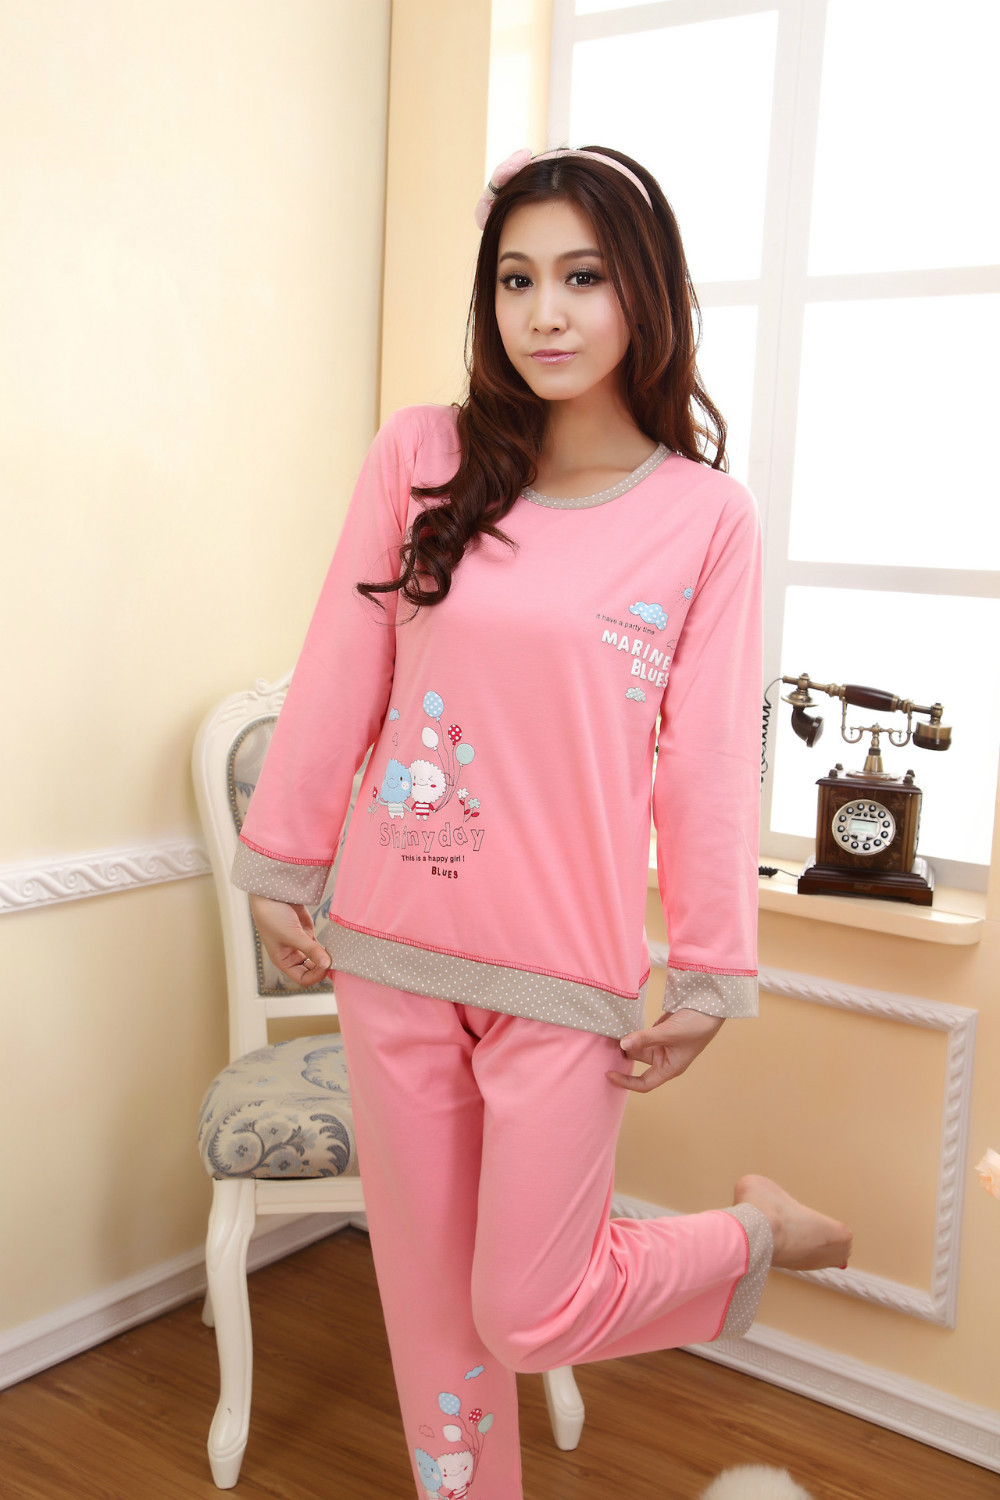 8ec3a8e0c6 girl sleeping clothes sets women pajamas sleepcoat nightgown nighty full sleeve  tops tees+full pants bedgown-in Pajama Sets from Underwear   Sleepwears on  ...